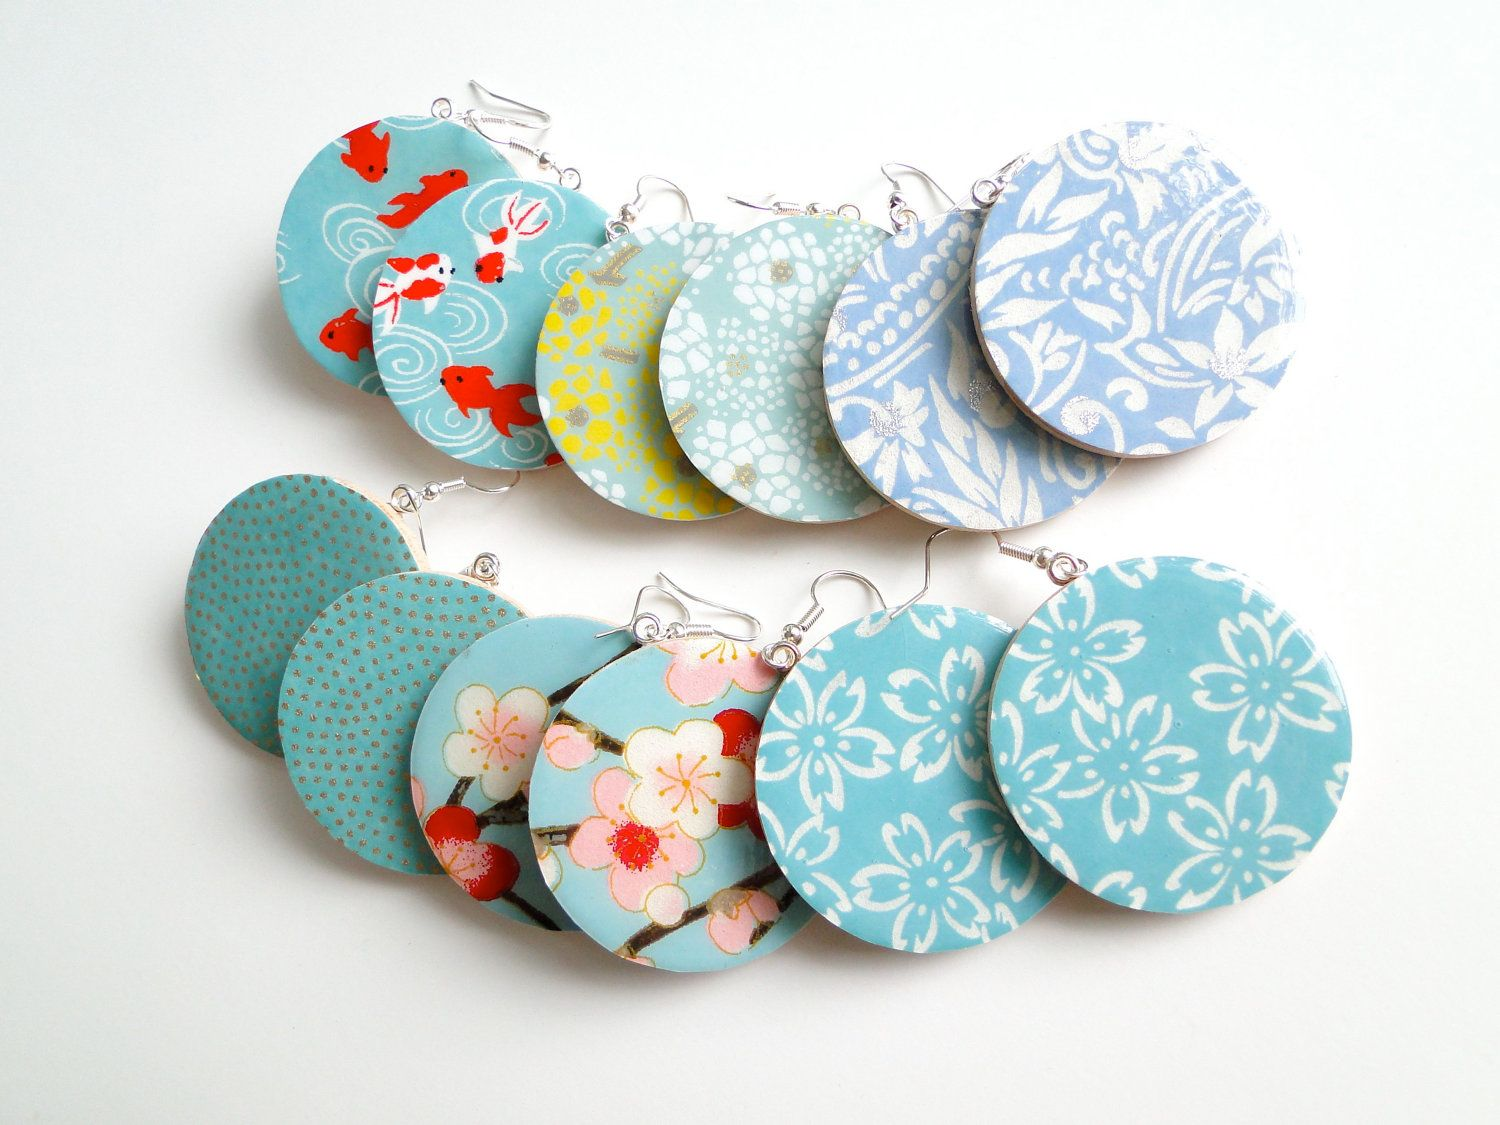 Turquoise Earrings, Blue Japanese Paper Earrings, Chiyogami, Washi,  Origami, Bridesmaids, Large Dangles, Made To Order, Gift Under 20